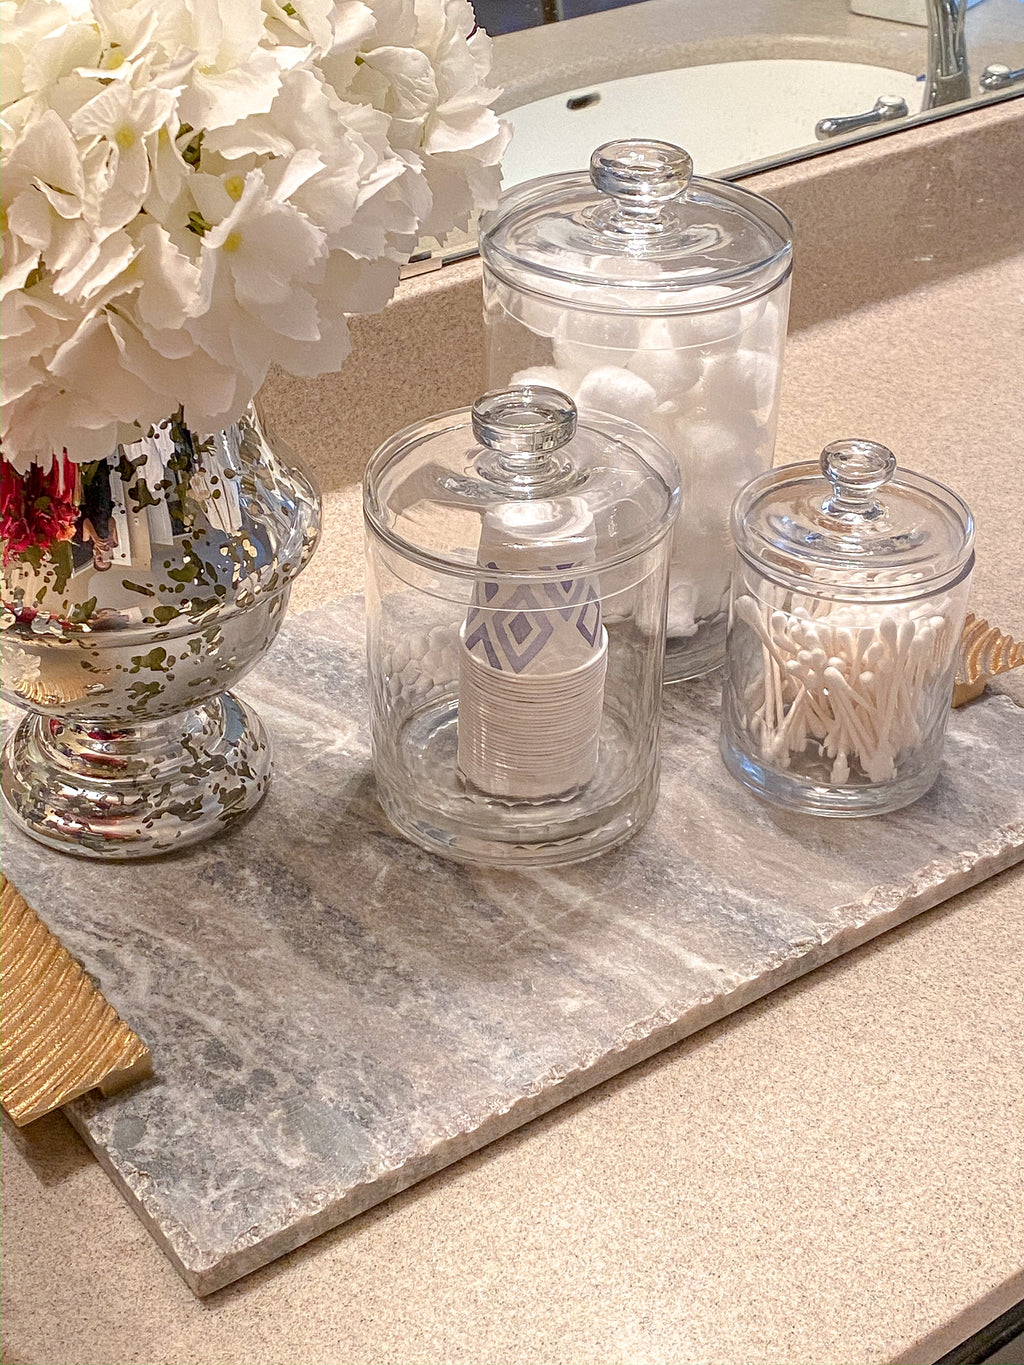 3 Glass Jar Set